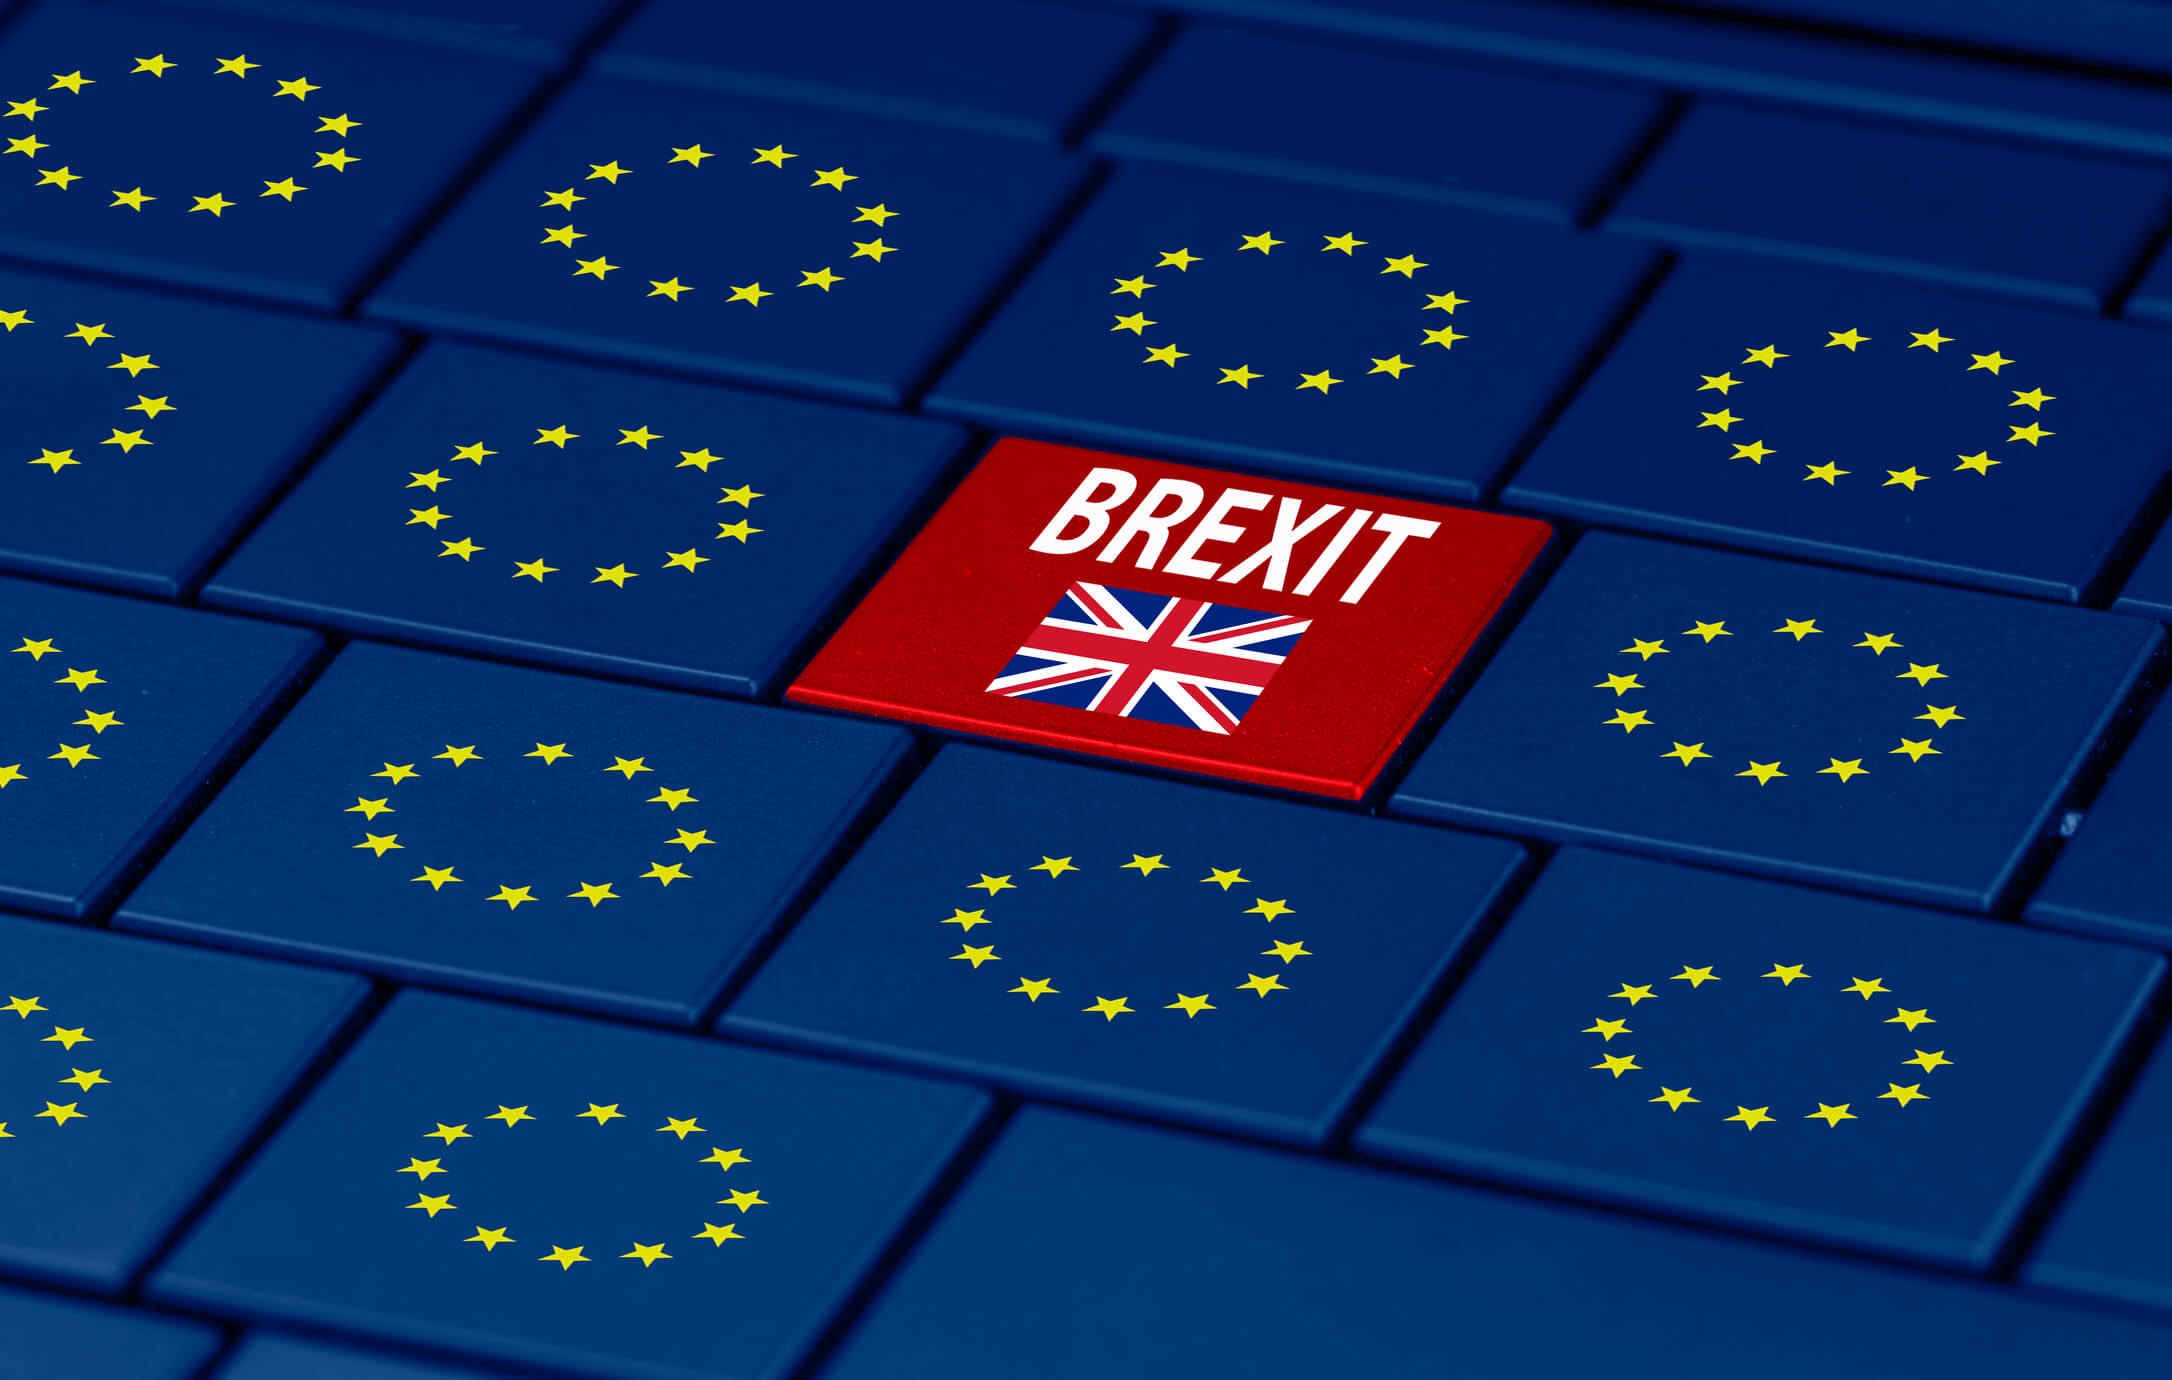 Cutting through the confusion: Cyber security after Brexit